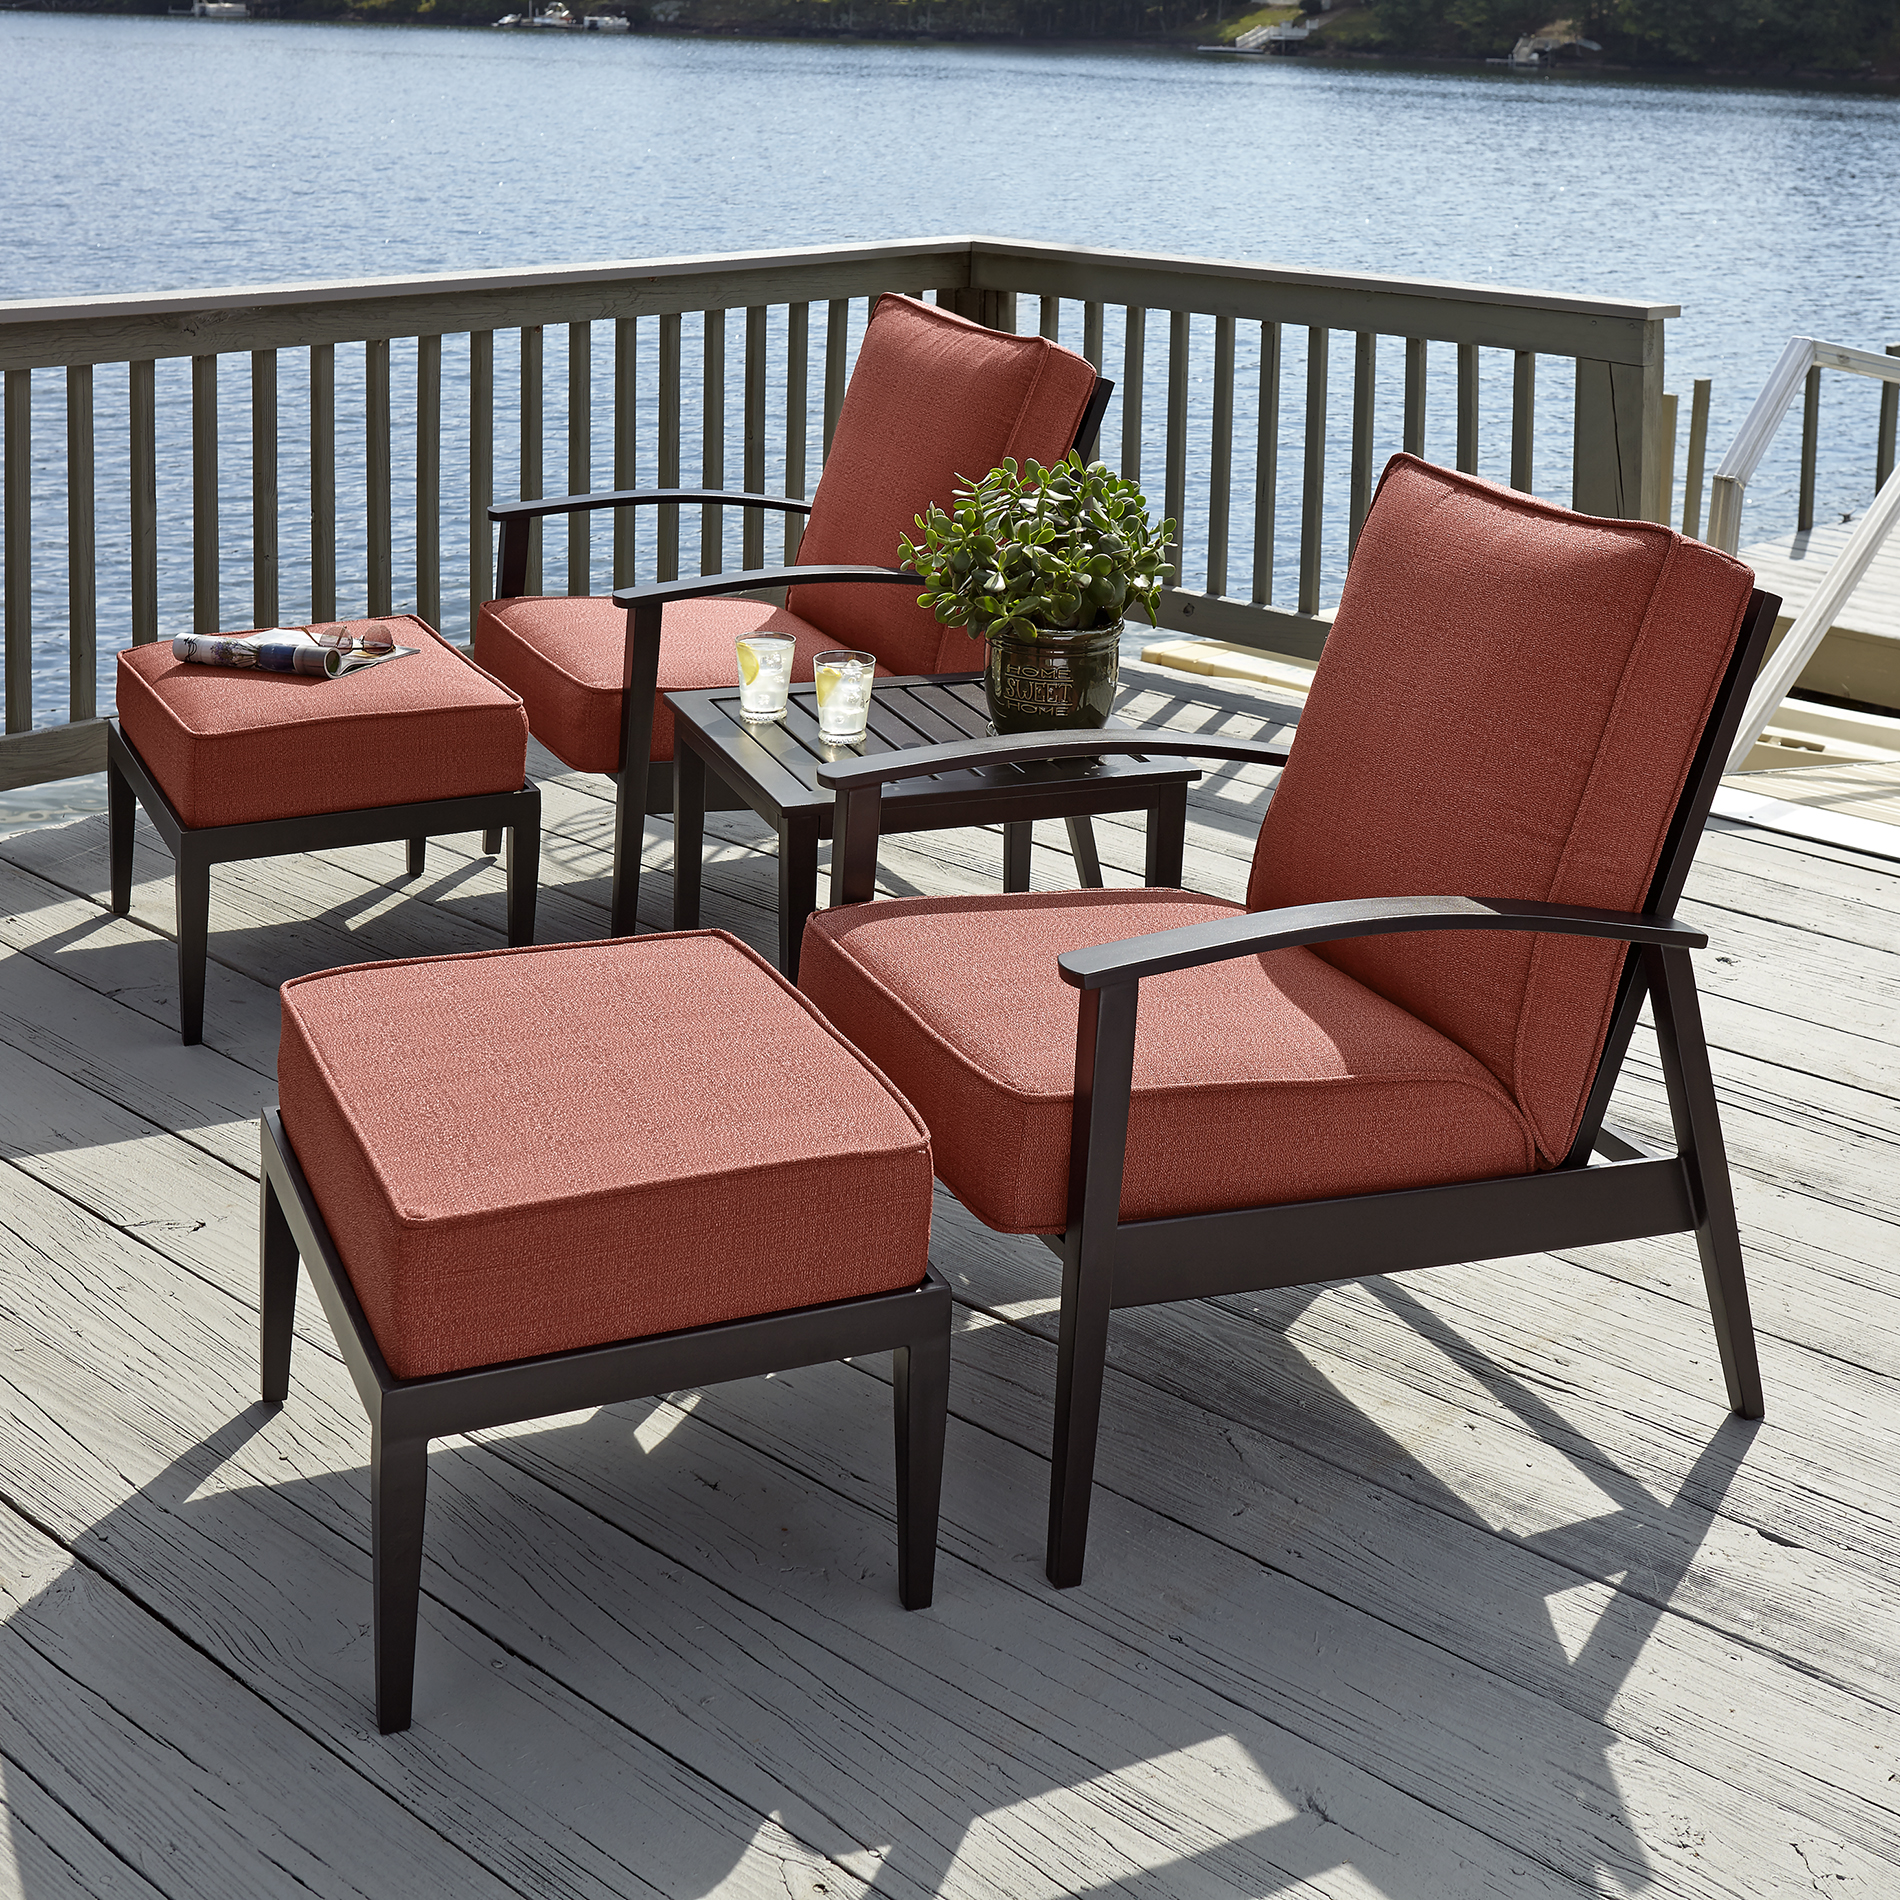 Grand Harbor Lakewood 5 Piece Seating Set- Red Limited